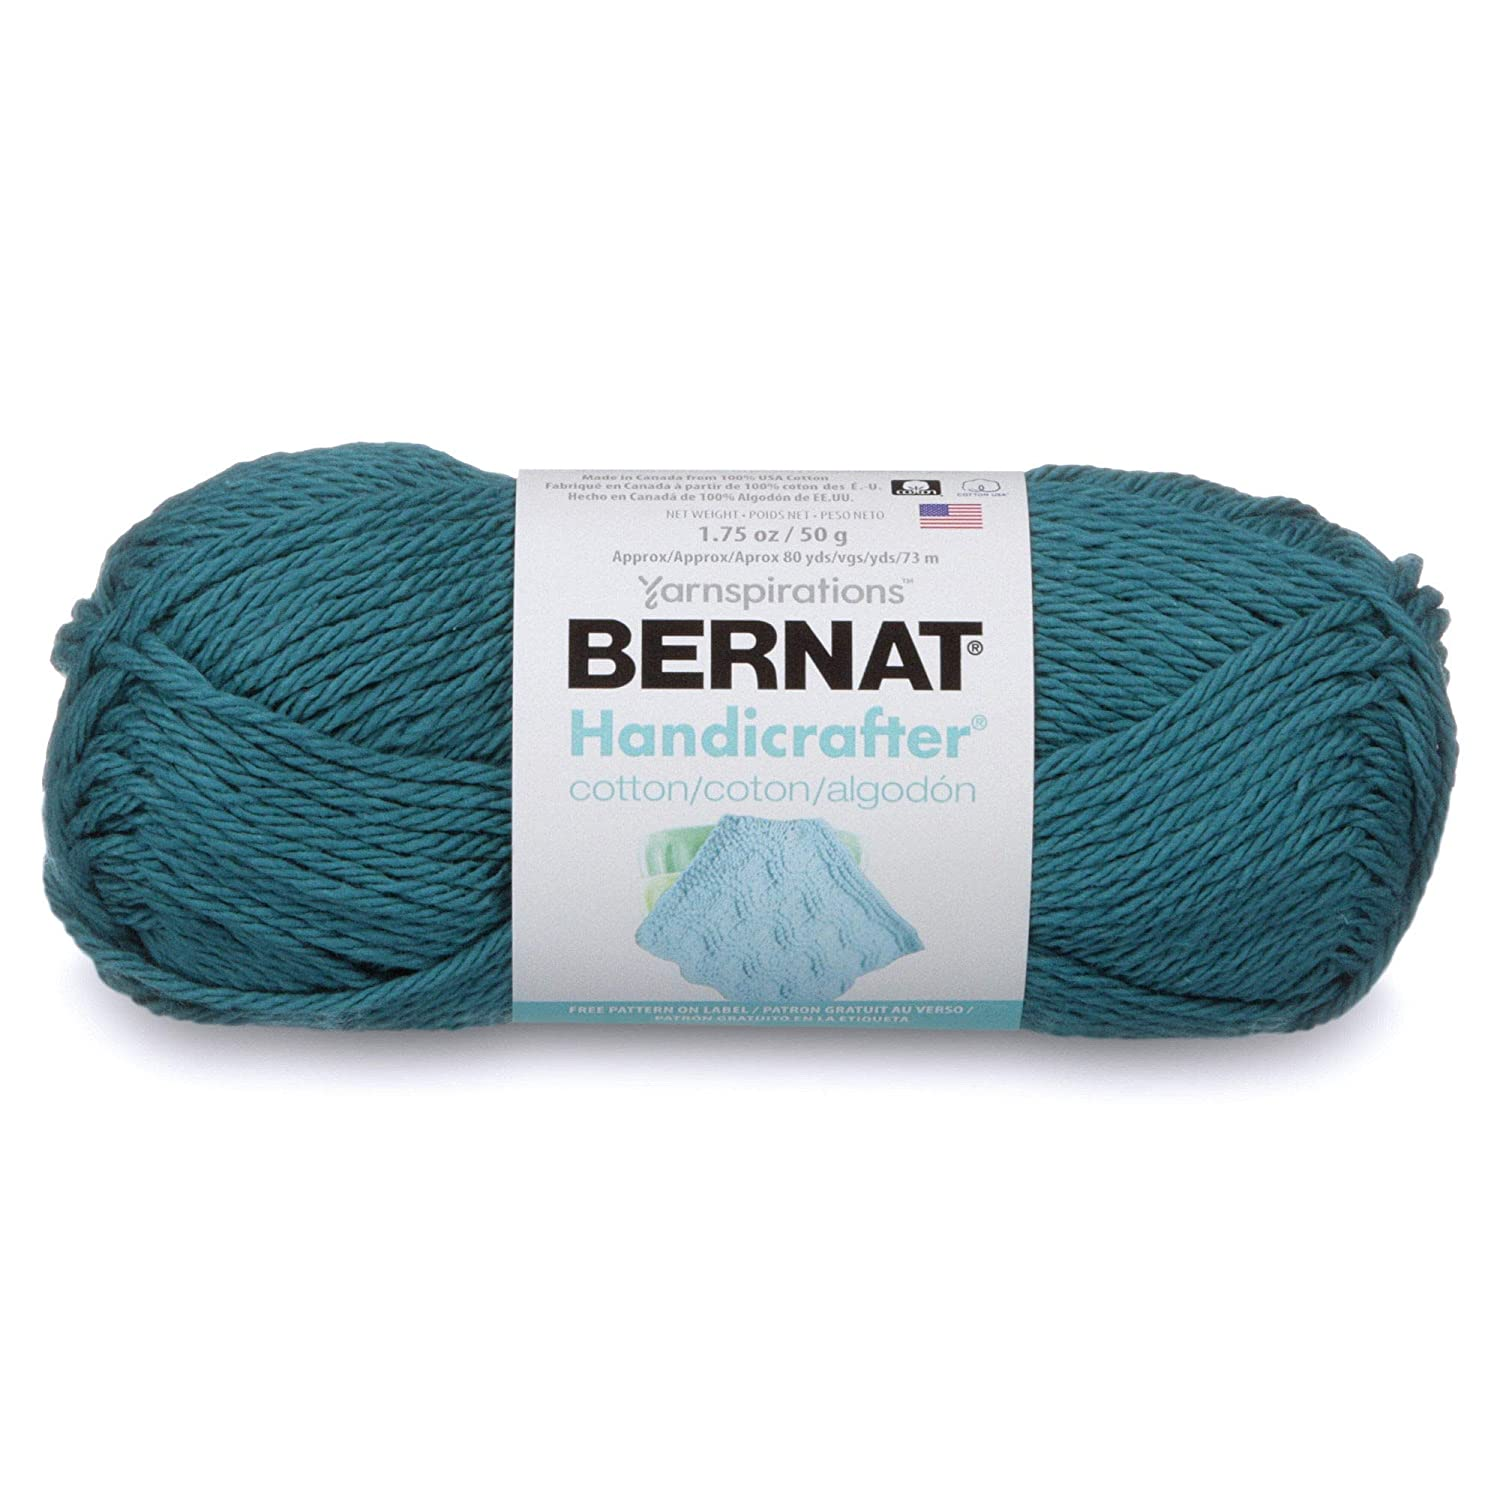 Bernat Handicrafter Cotton-Solids Yarn, Teal